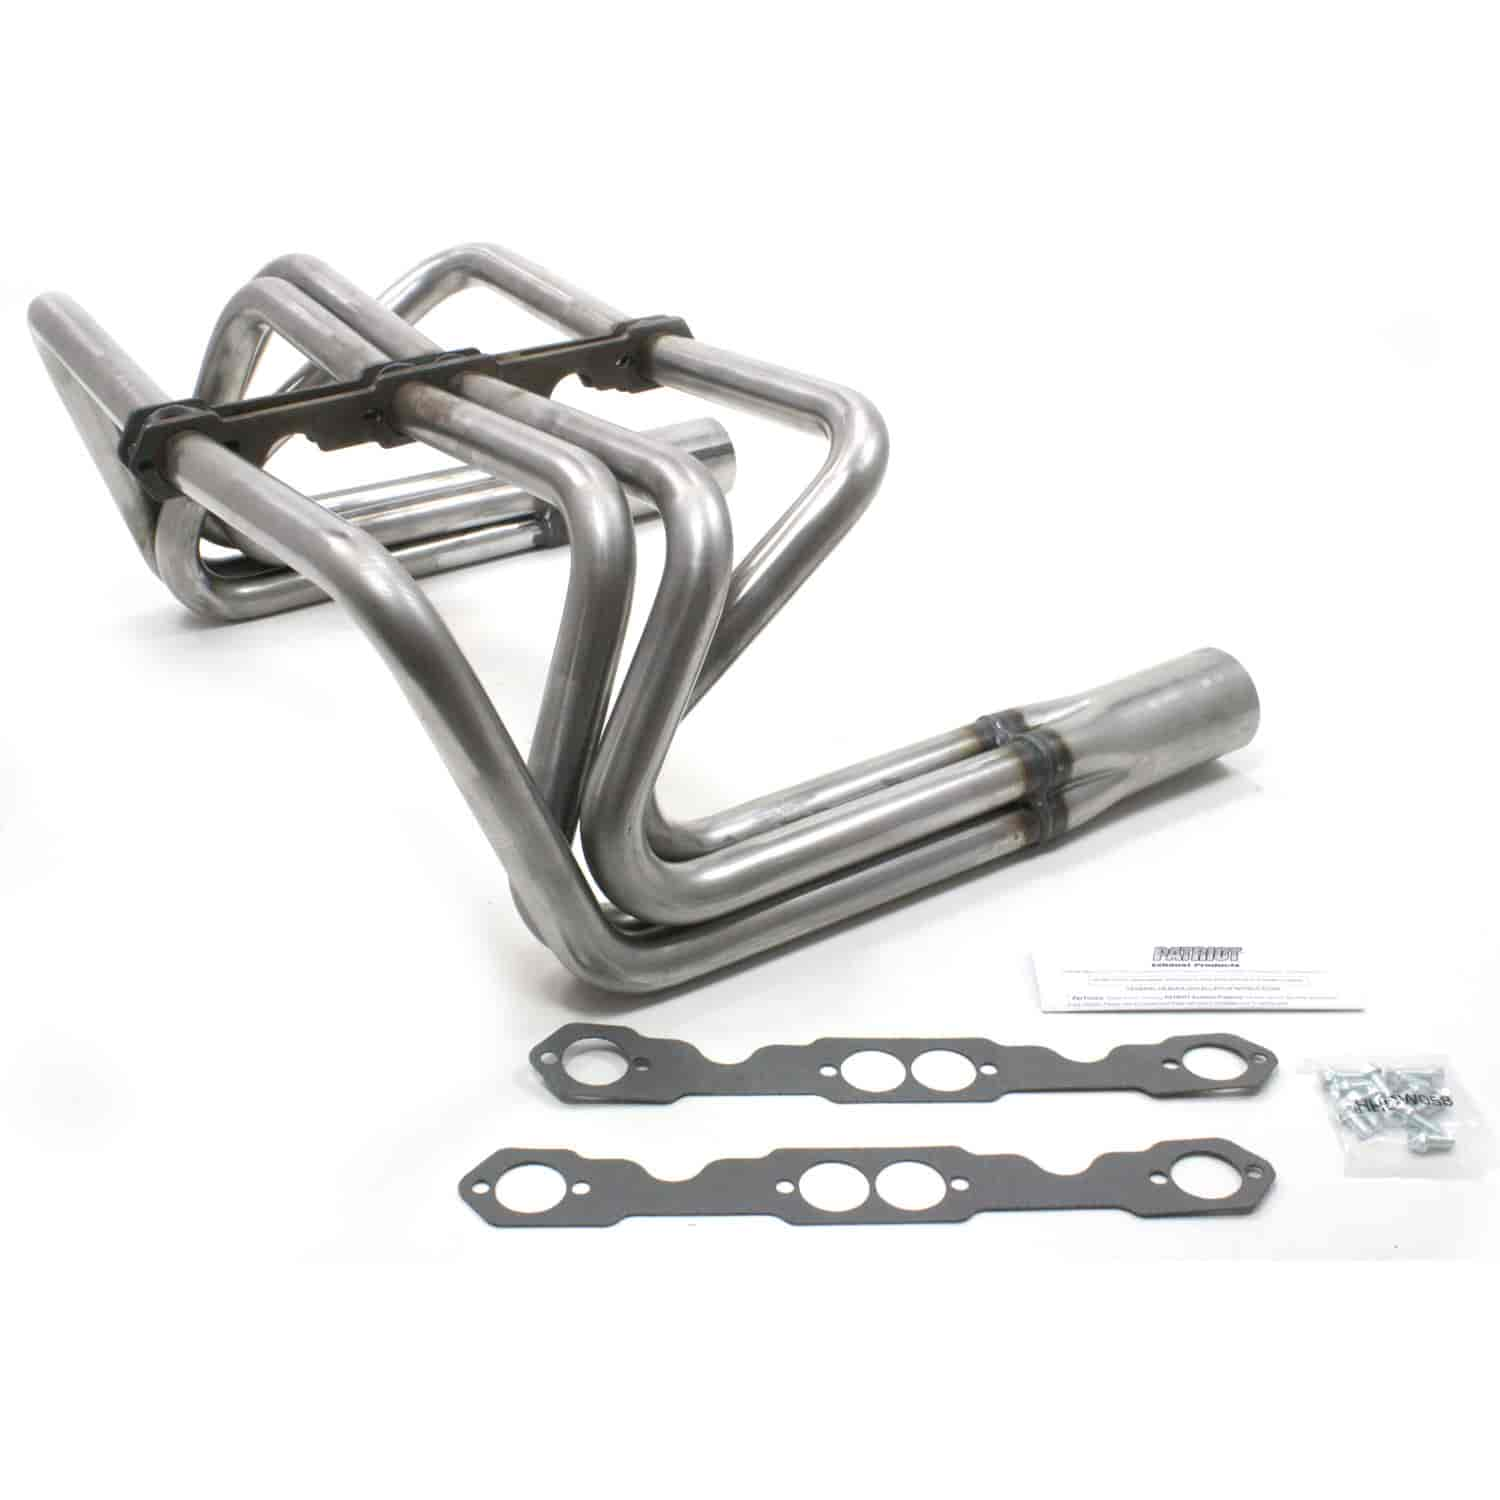 Patriot Exhaust H8069: Sprint Car Style Headers for T-Bucket Chevy ...